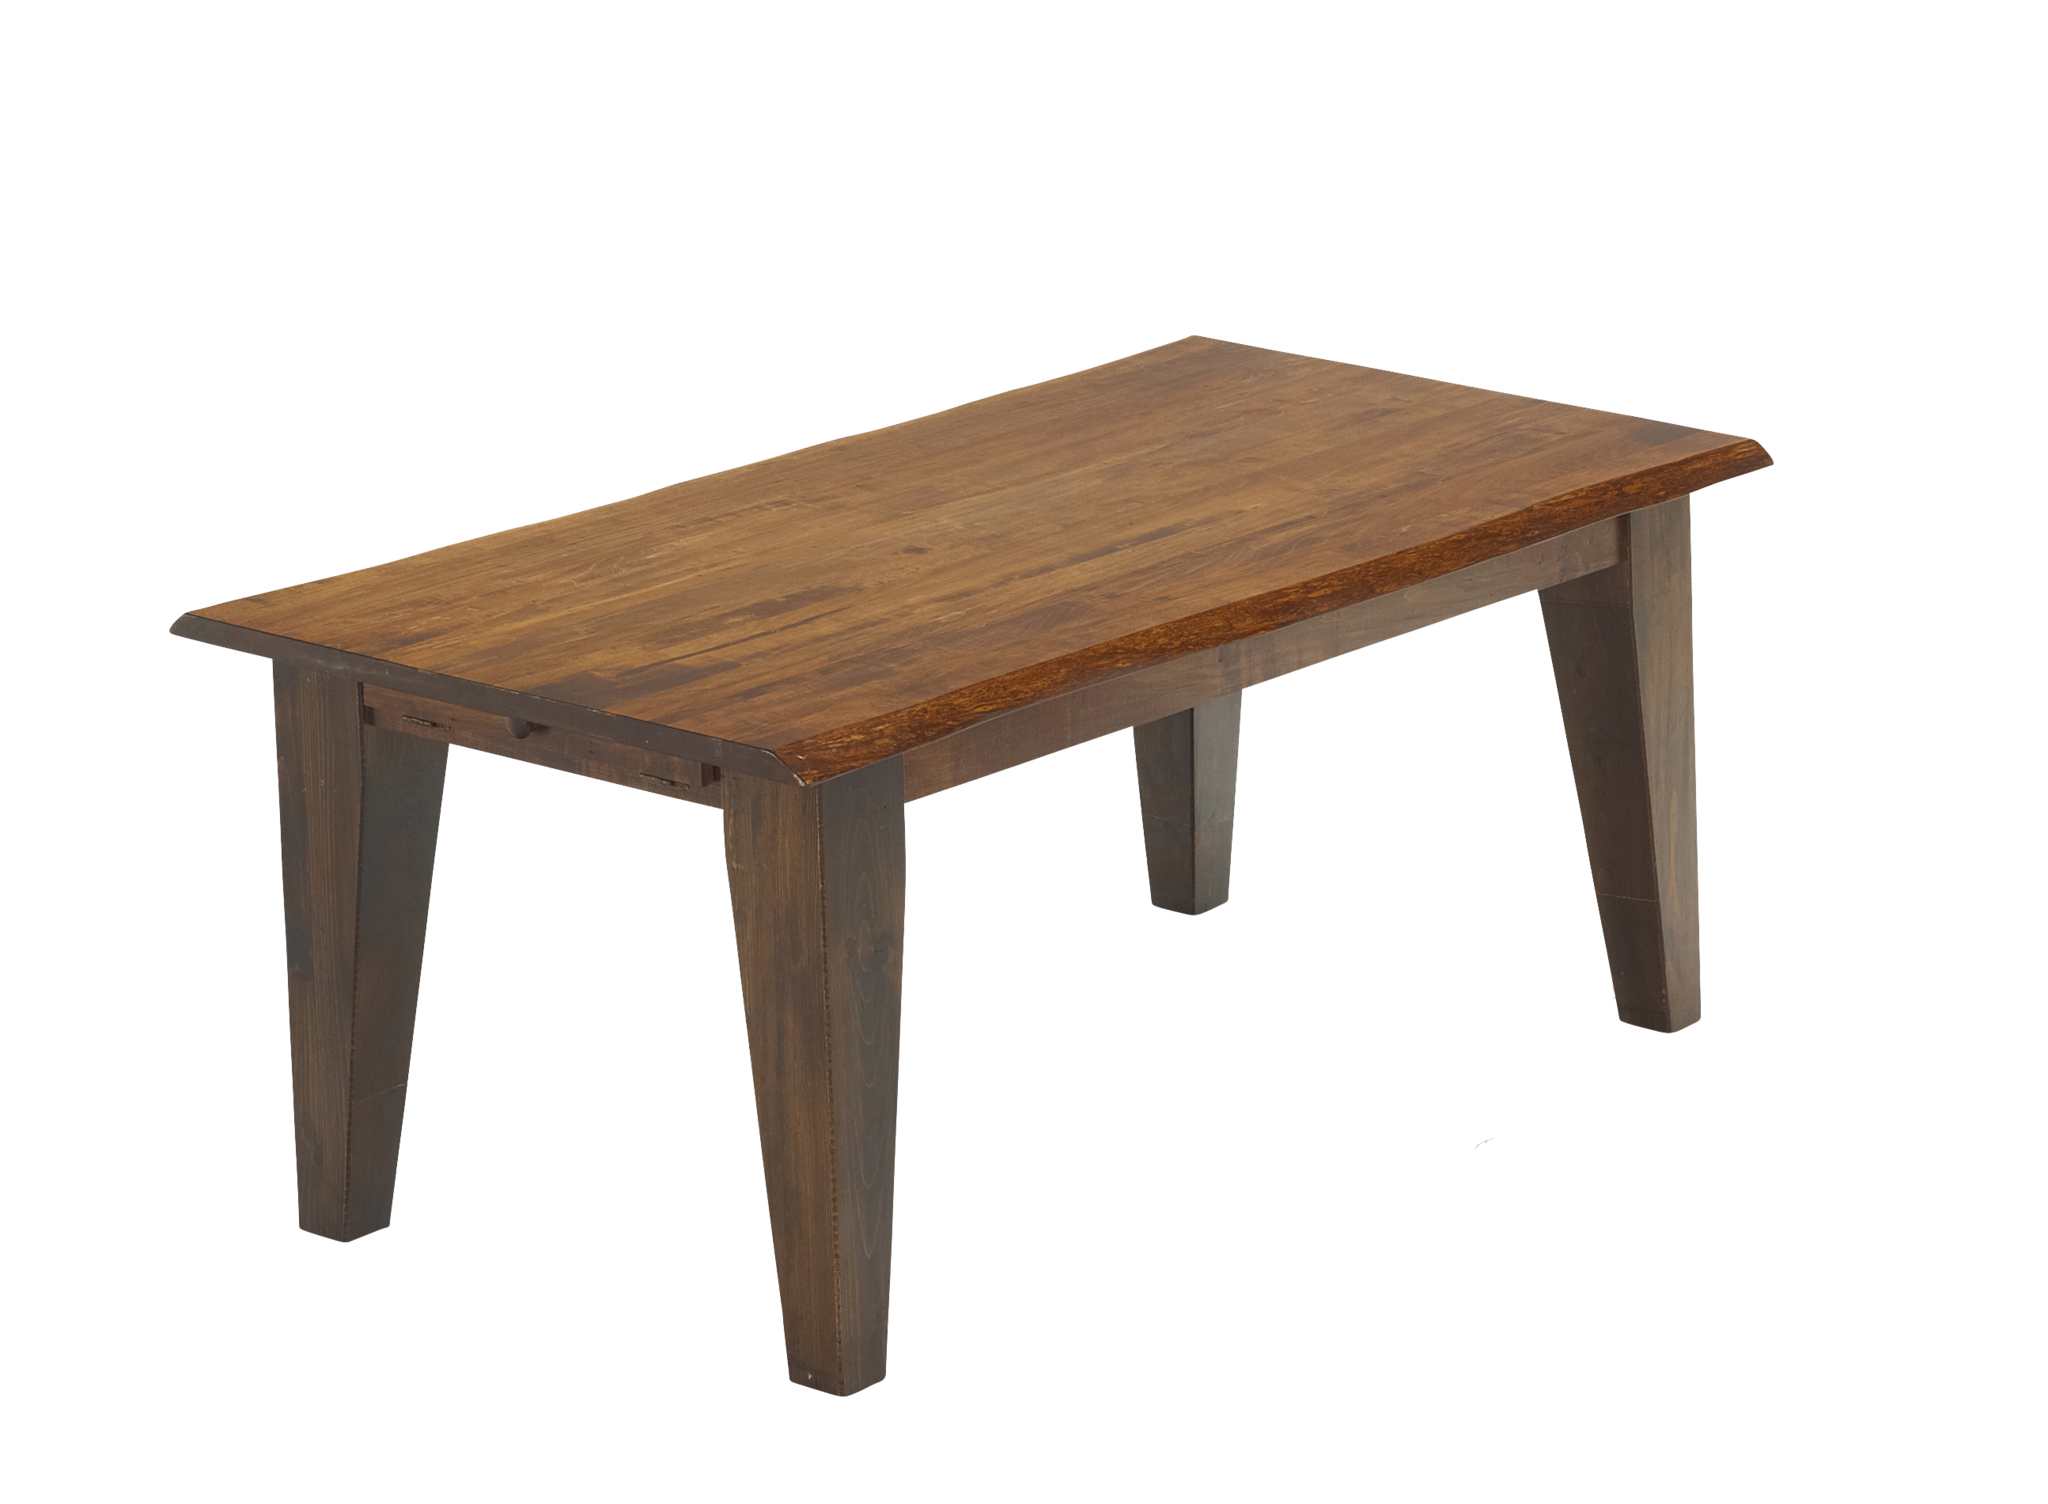 Live Edge Rough Sawn Harvest Table